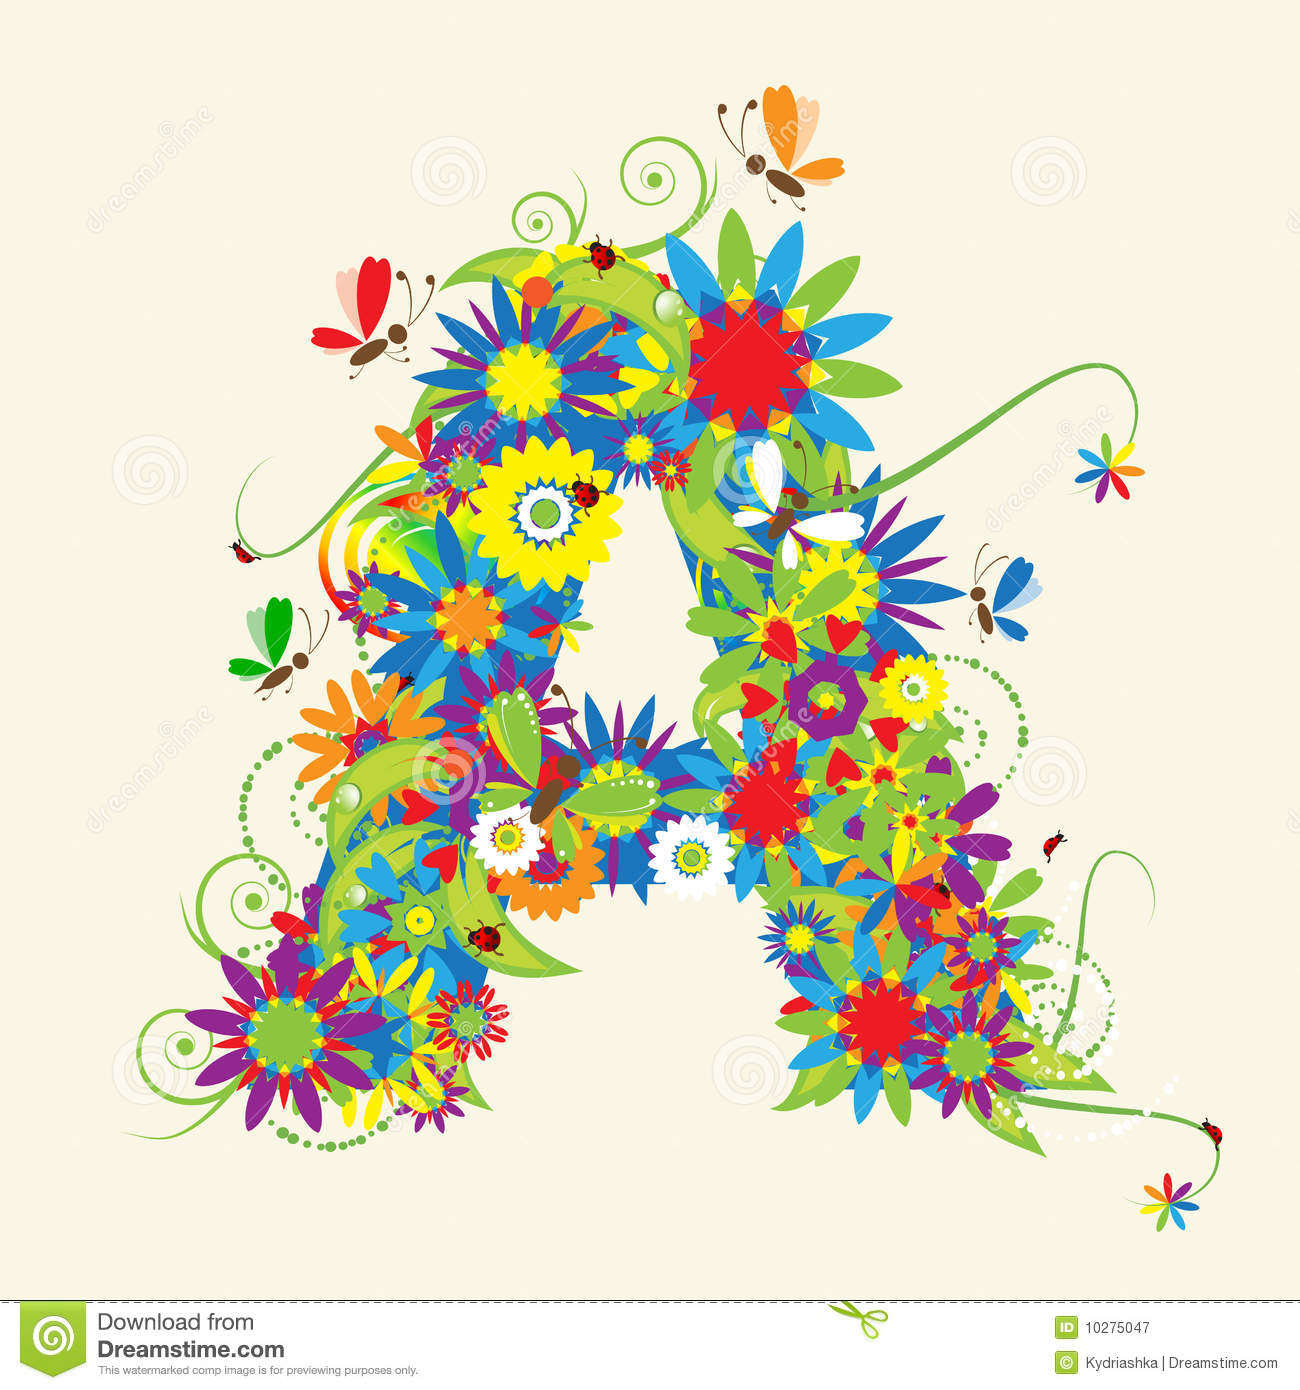 Letter A, floral design. See also letters in my gallery.